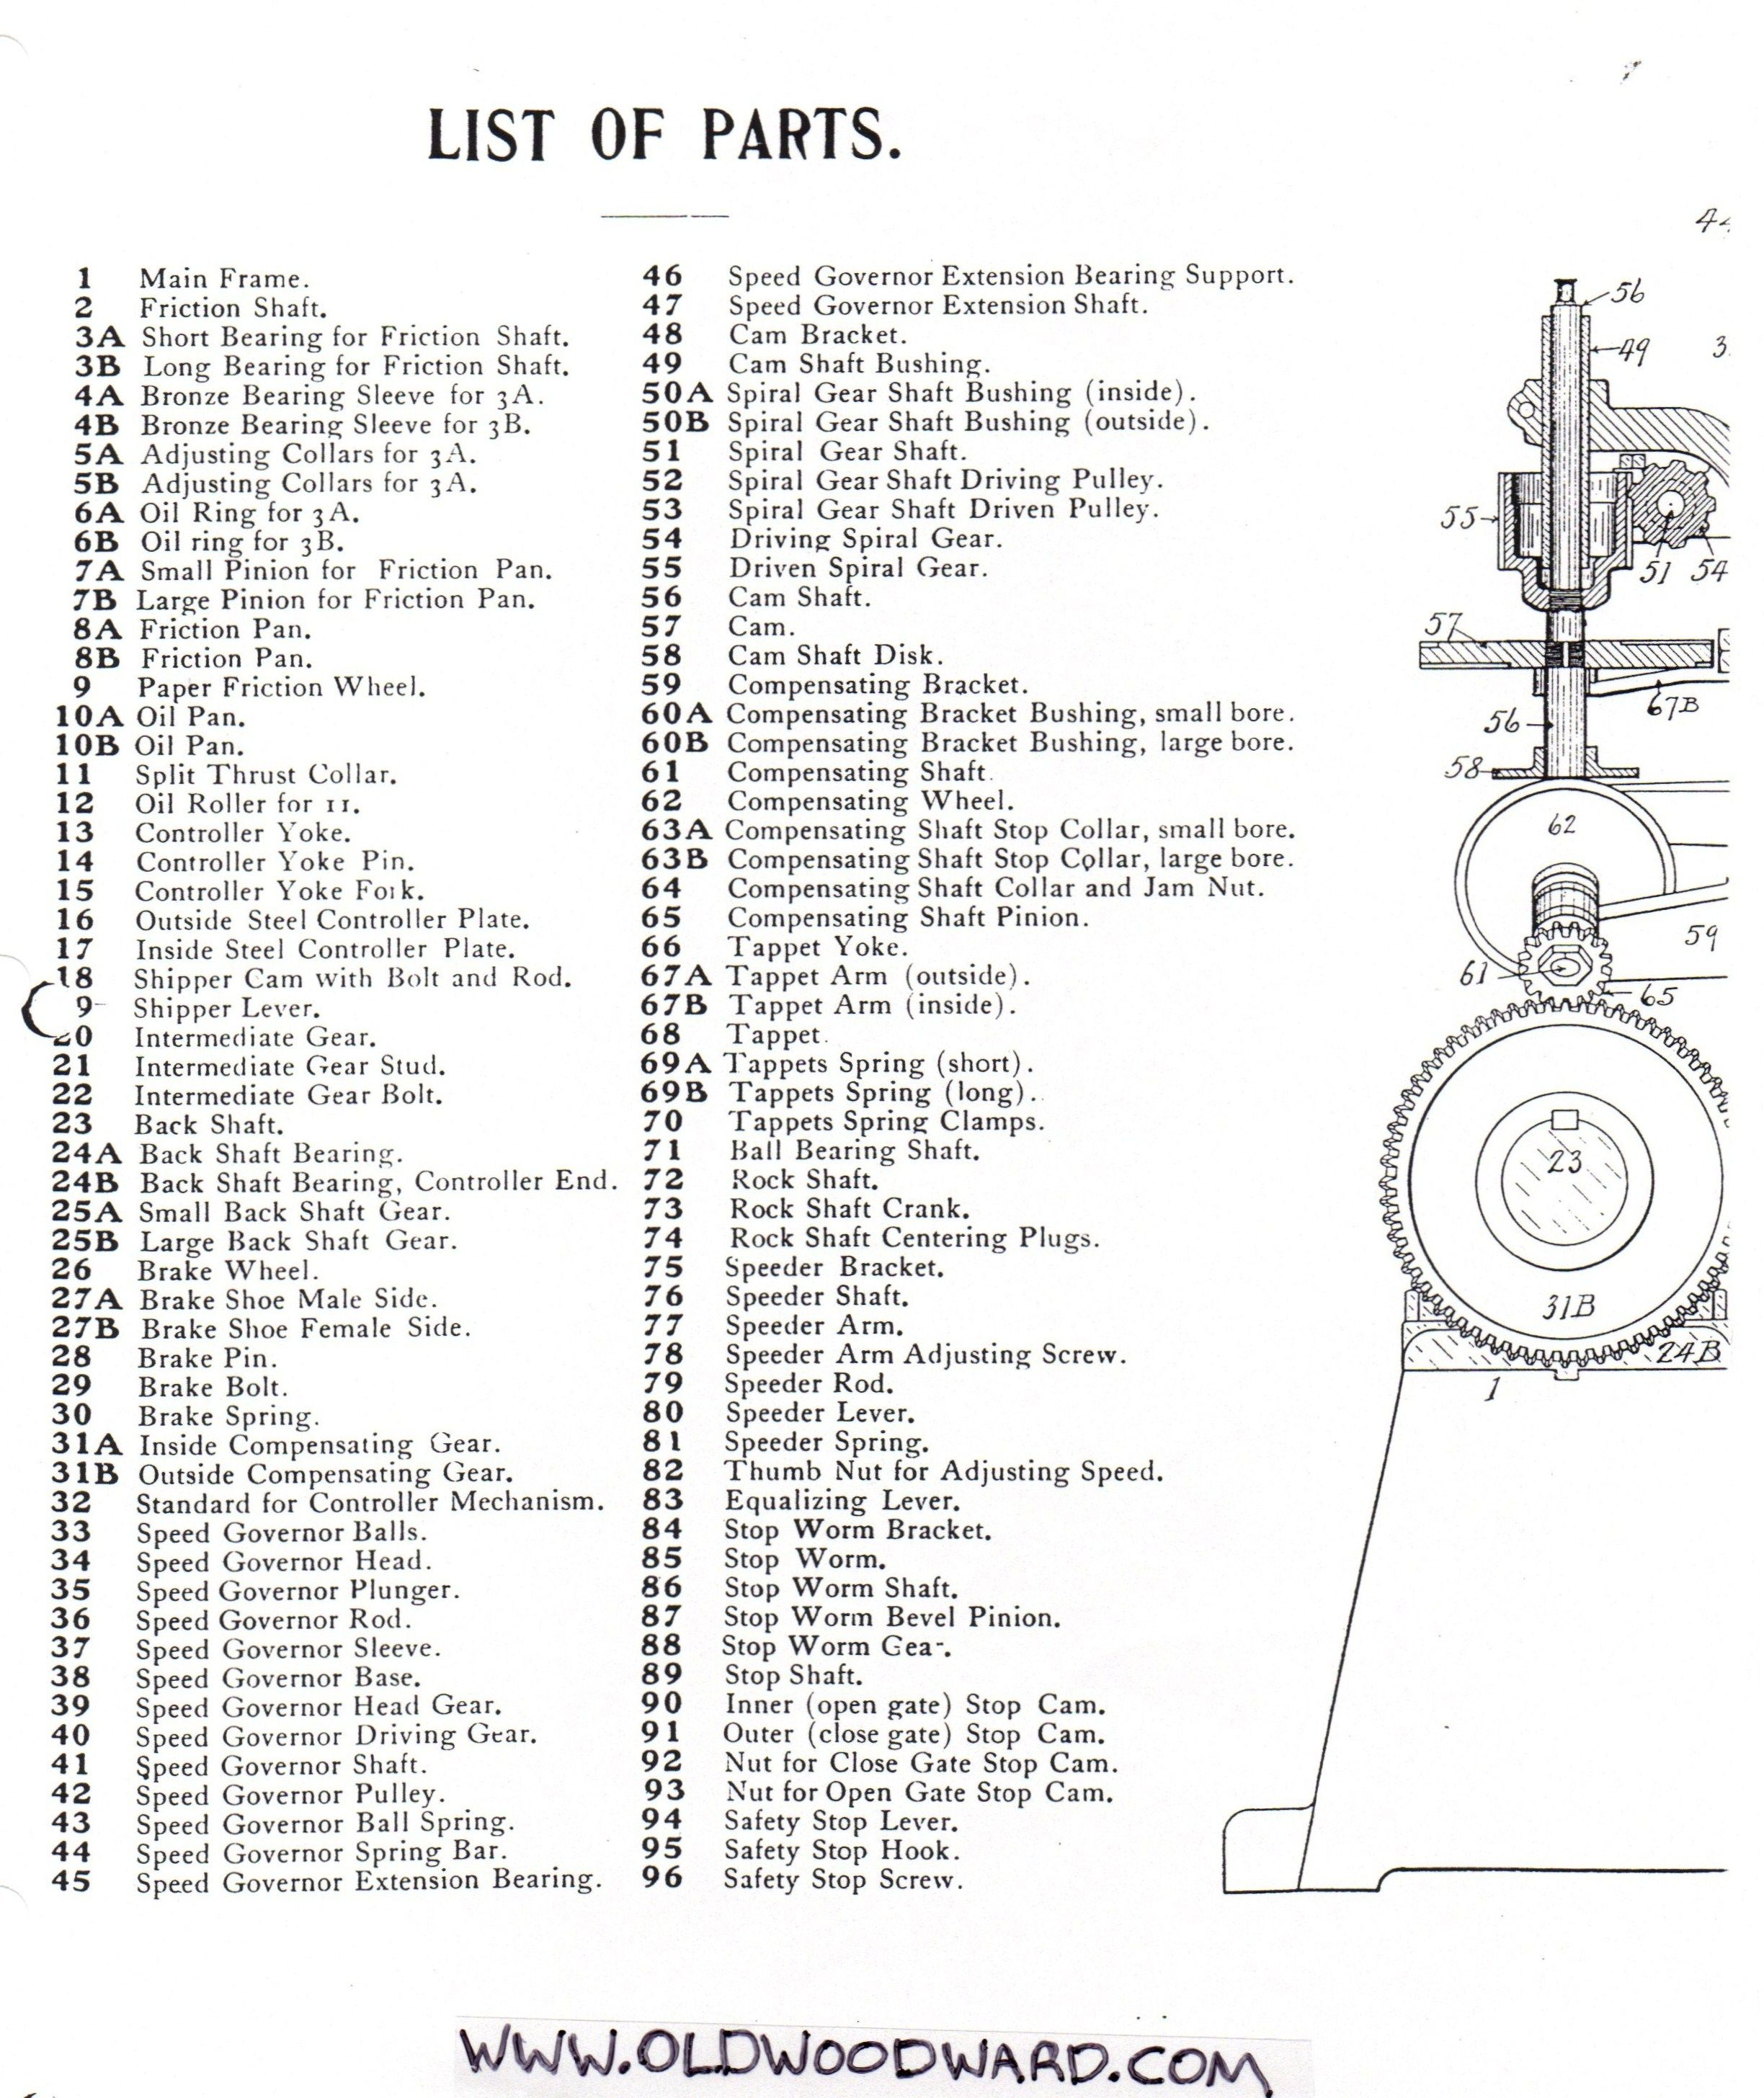 Woodward Horizontal Water Wheel Governor parts list from 1902